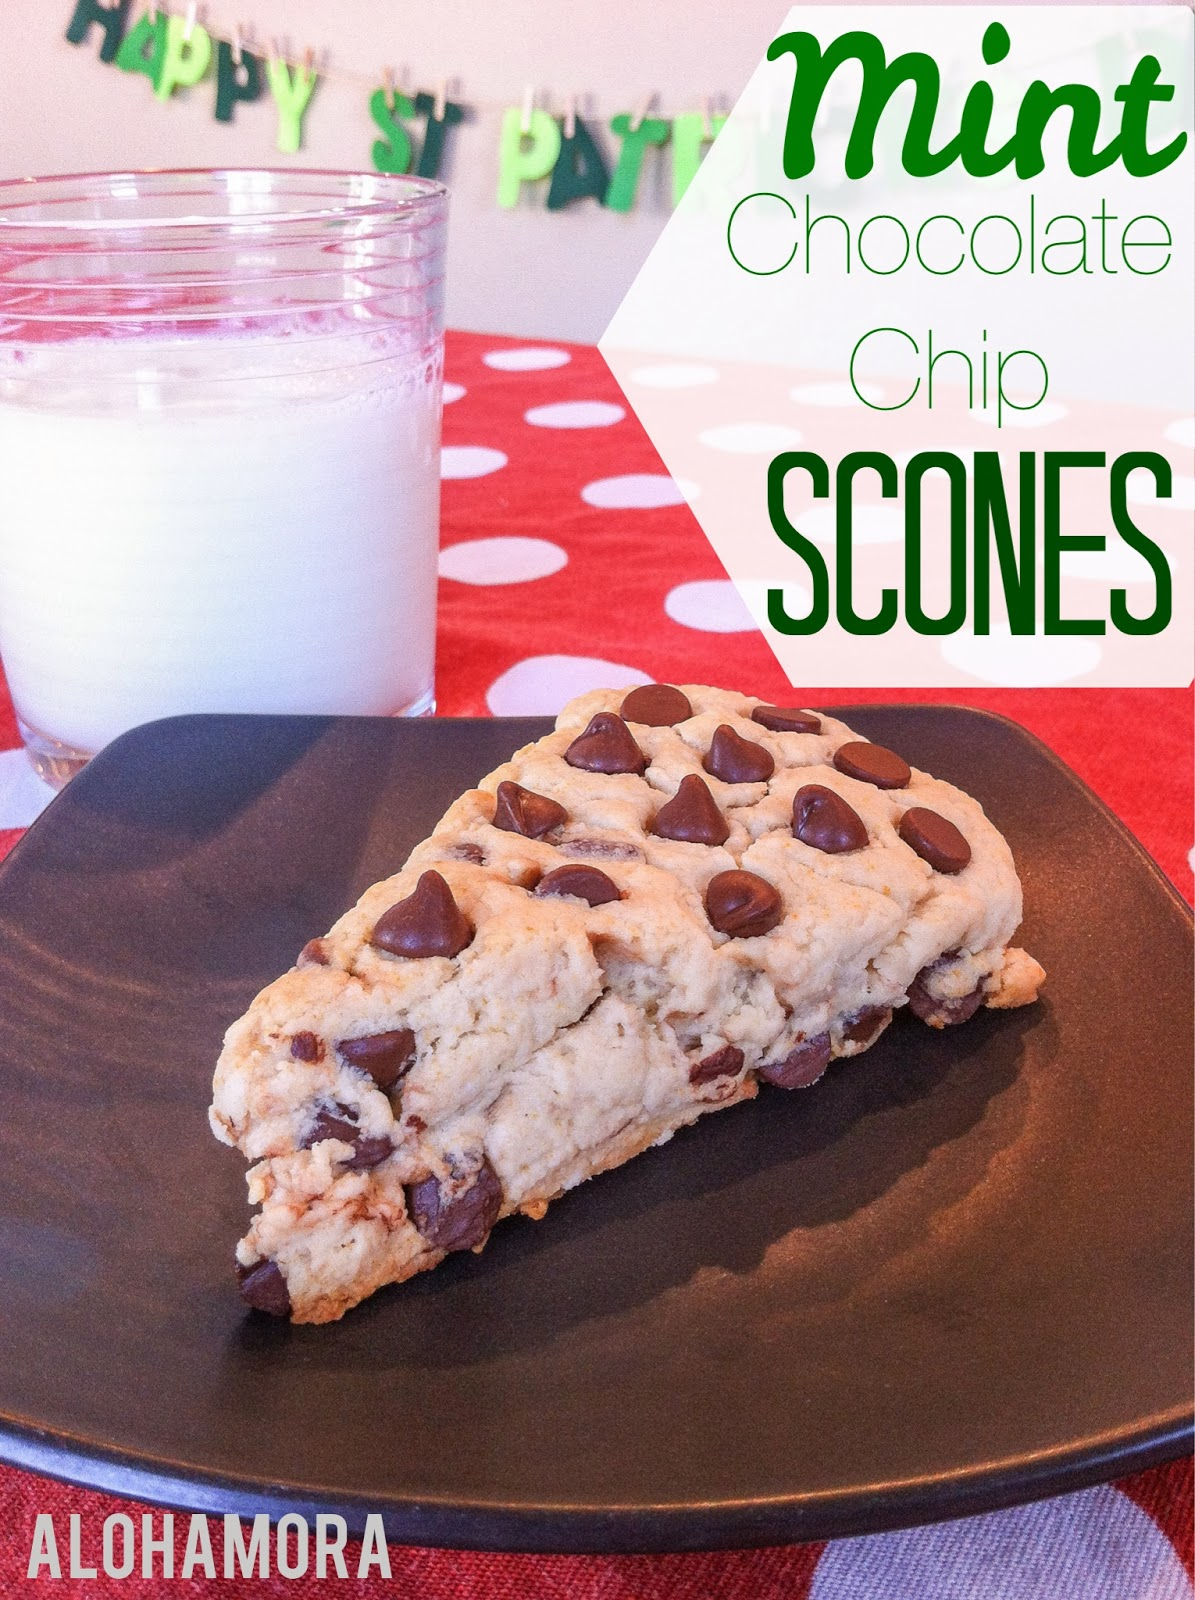 No cutting, use a blender for these Mint Chocolate Chip Scones.  Easy, delicious, and the perfect tea party treat Alohamora Open a Book http://alohamoraopenabook.blogspot.com/